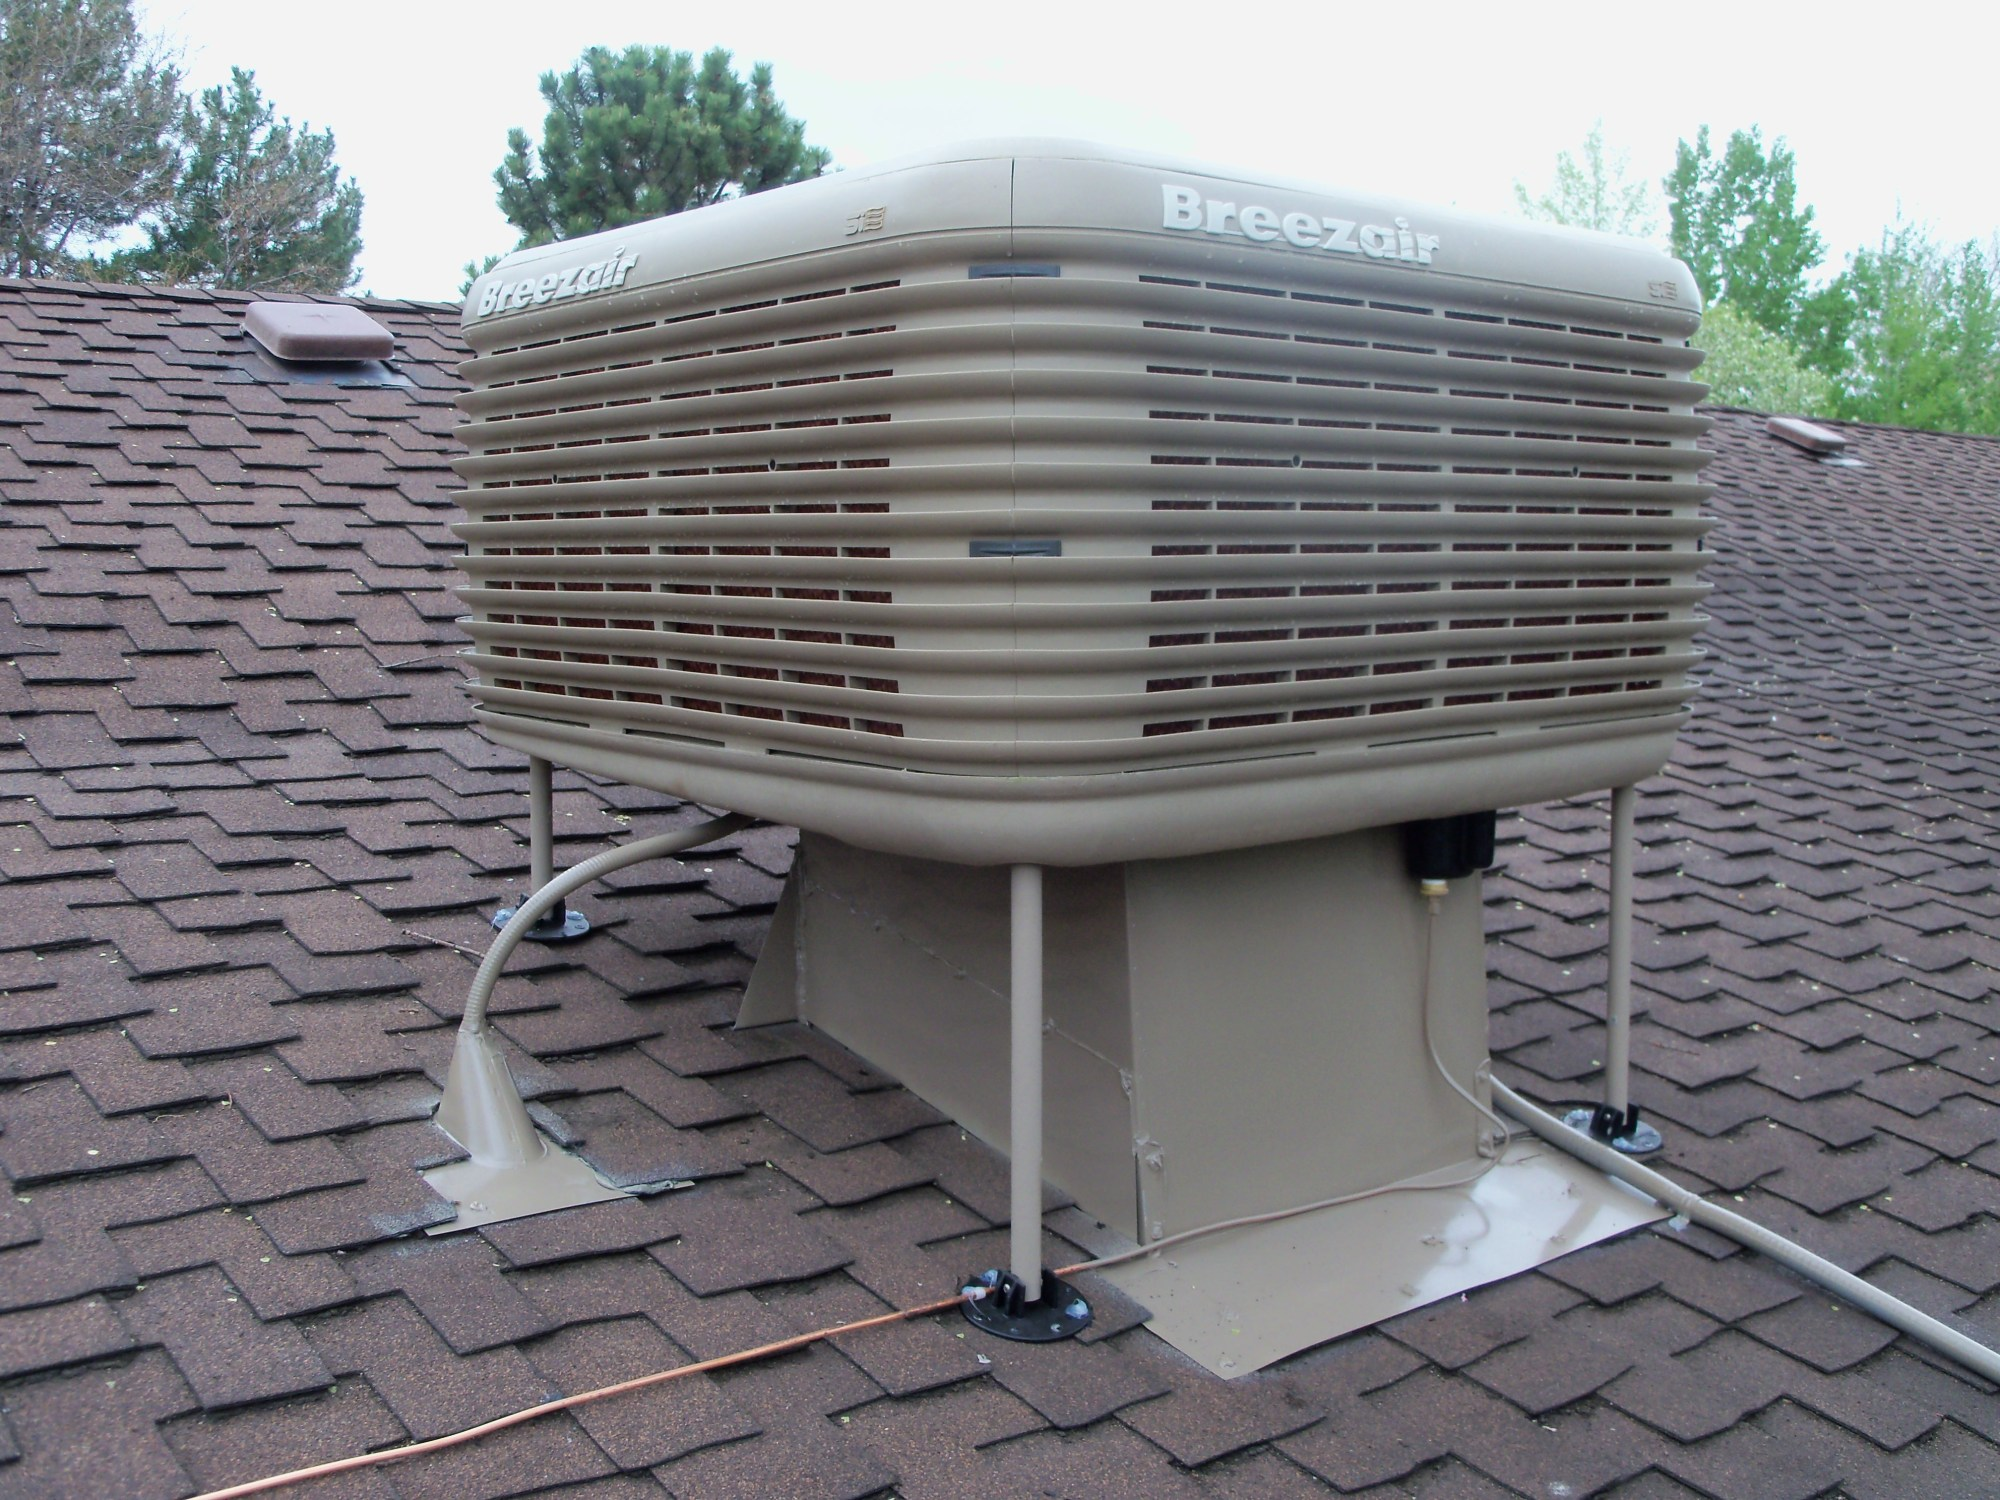 hight resolution of we are licensed insured contractors have been providing heating and eative cooler service installation retrofits to